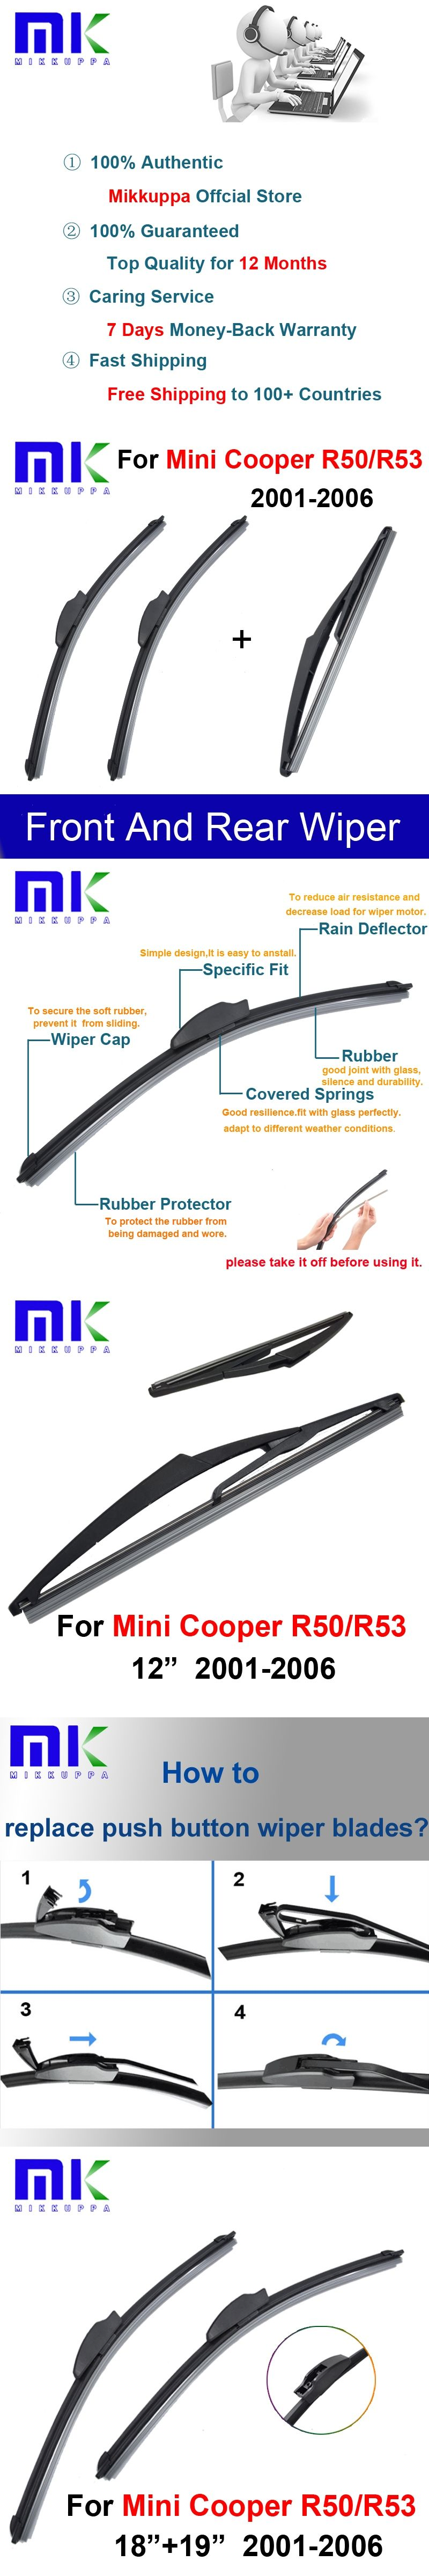 Front And Rear Wiper Blades For Mini Cooper R50 R53 2001 2002 2003